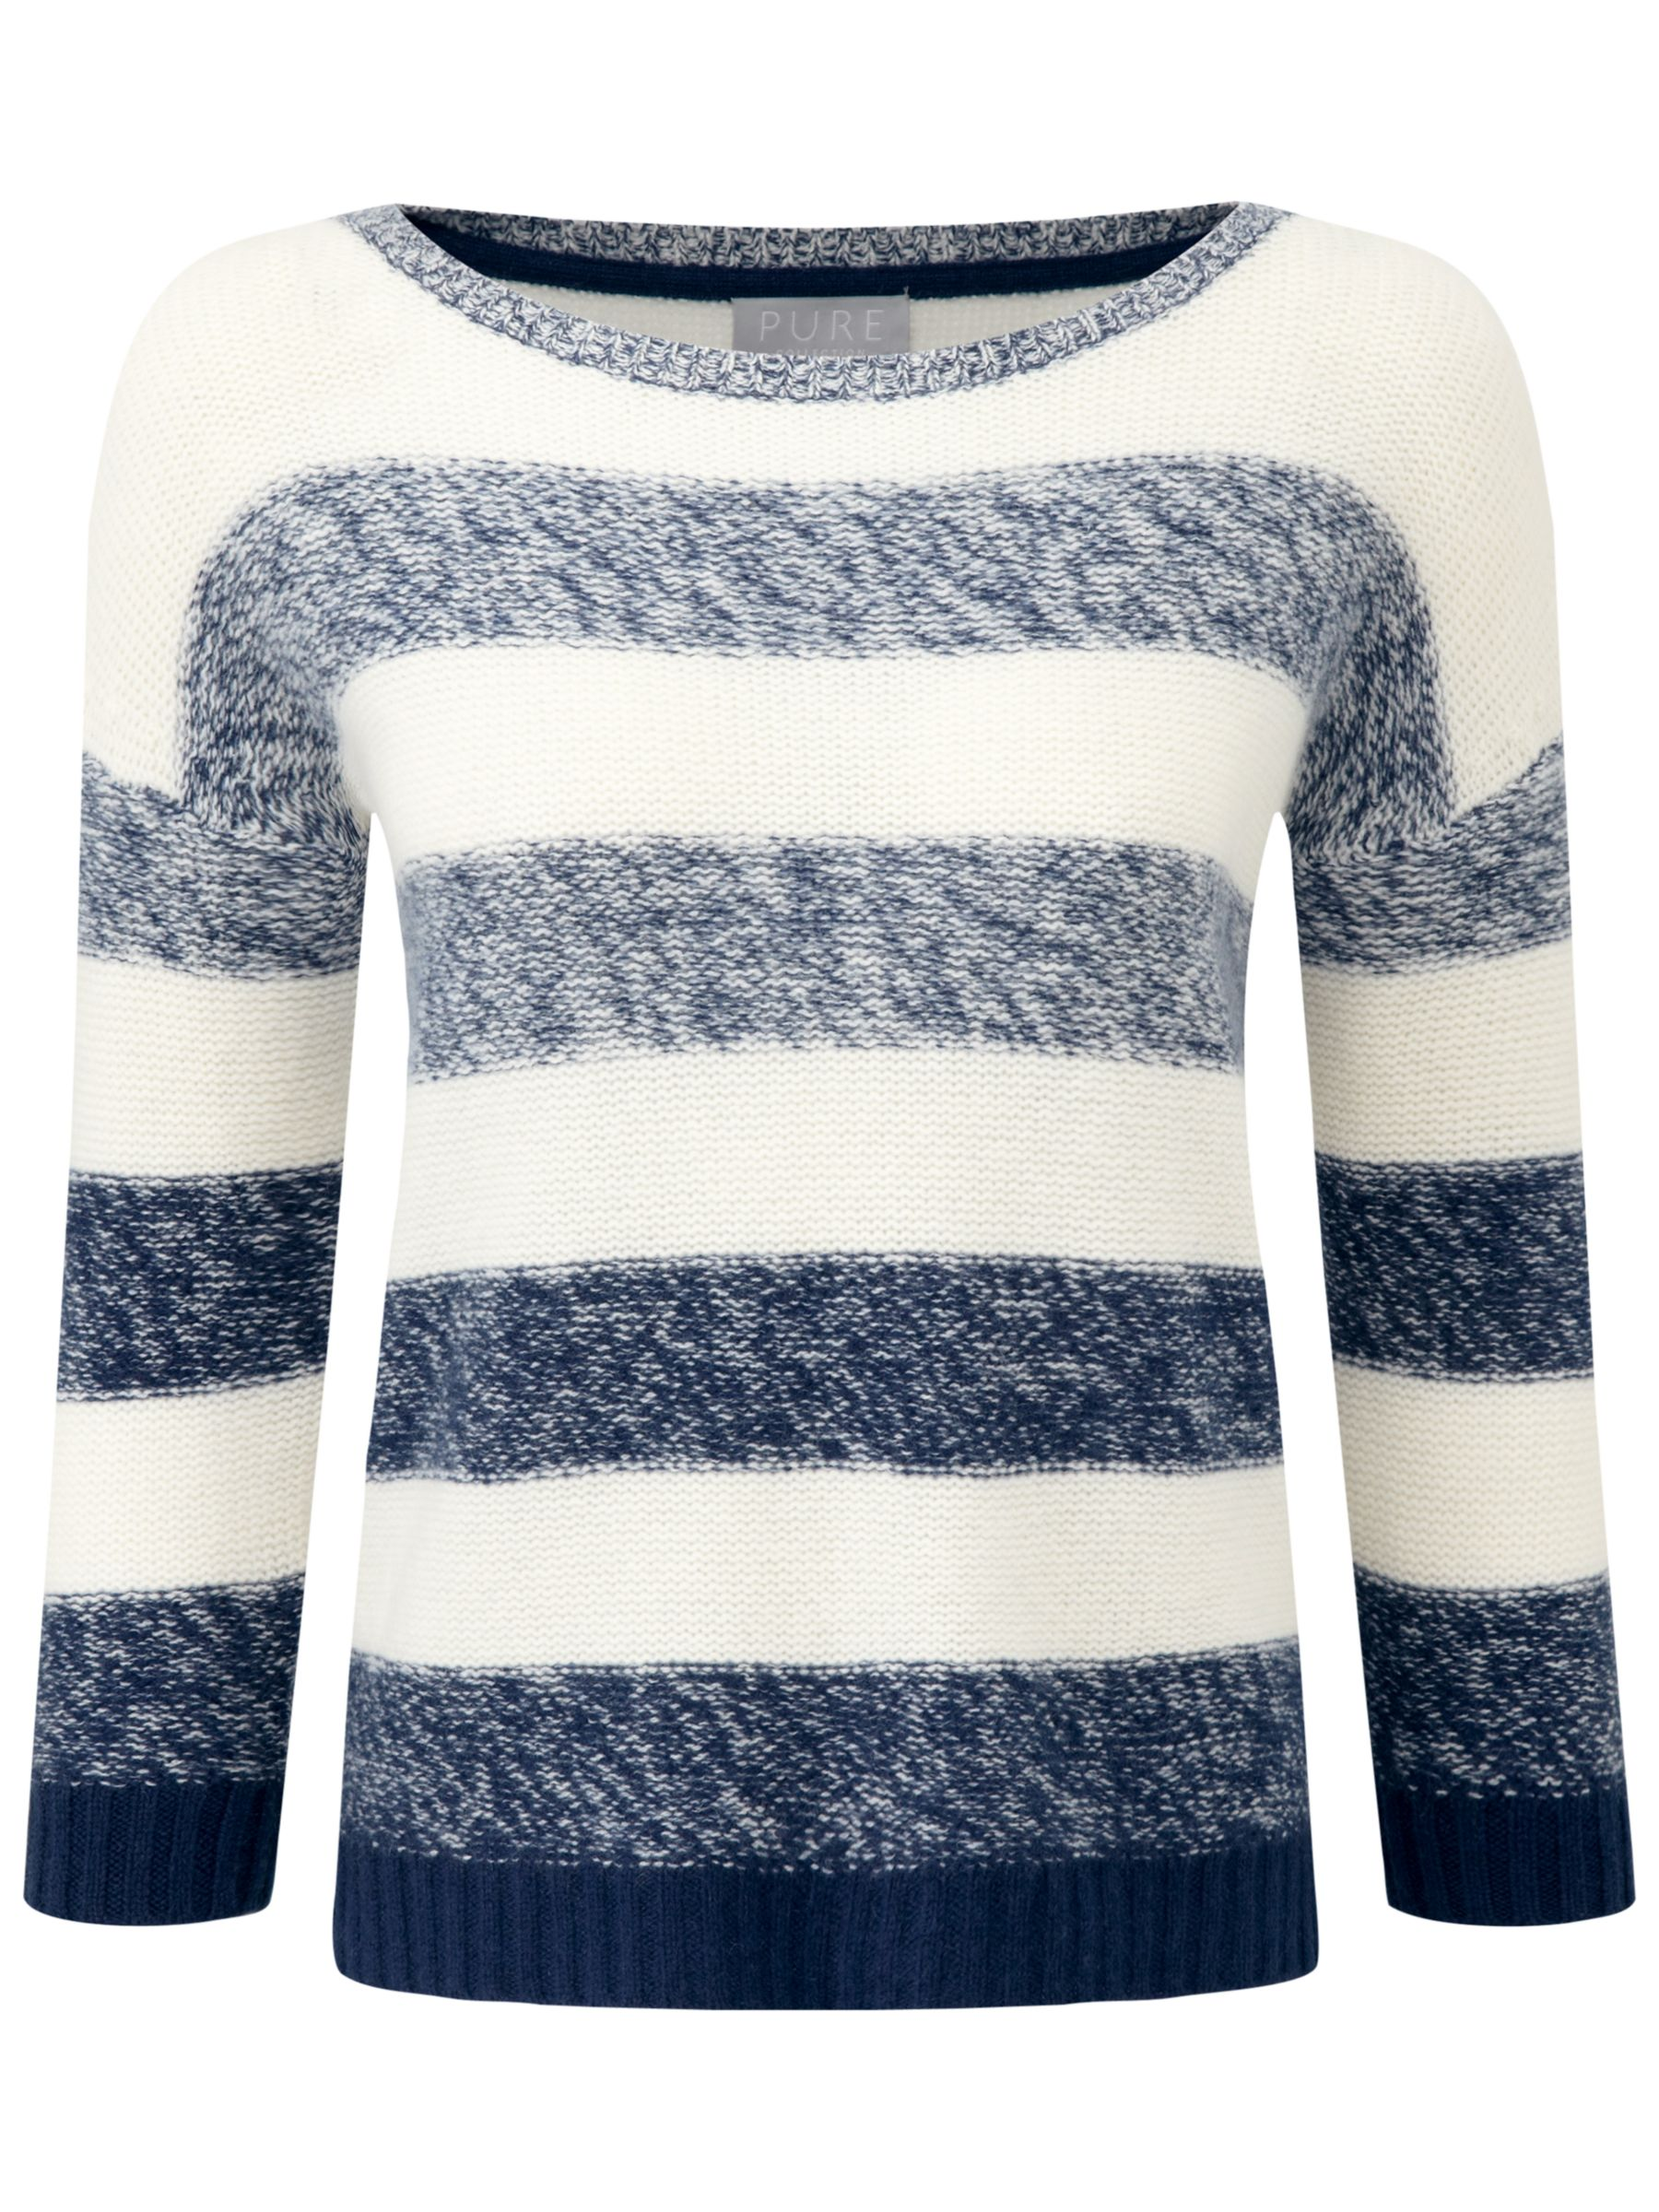 Pure Collection Striped Cashmere Sweater, French NavySoft